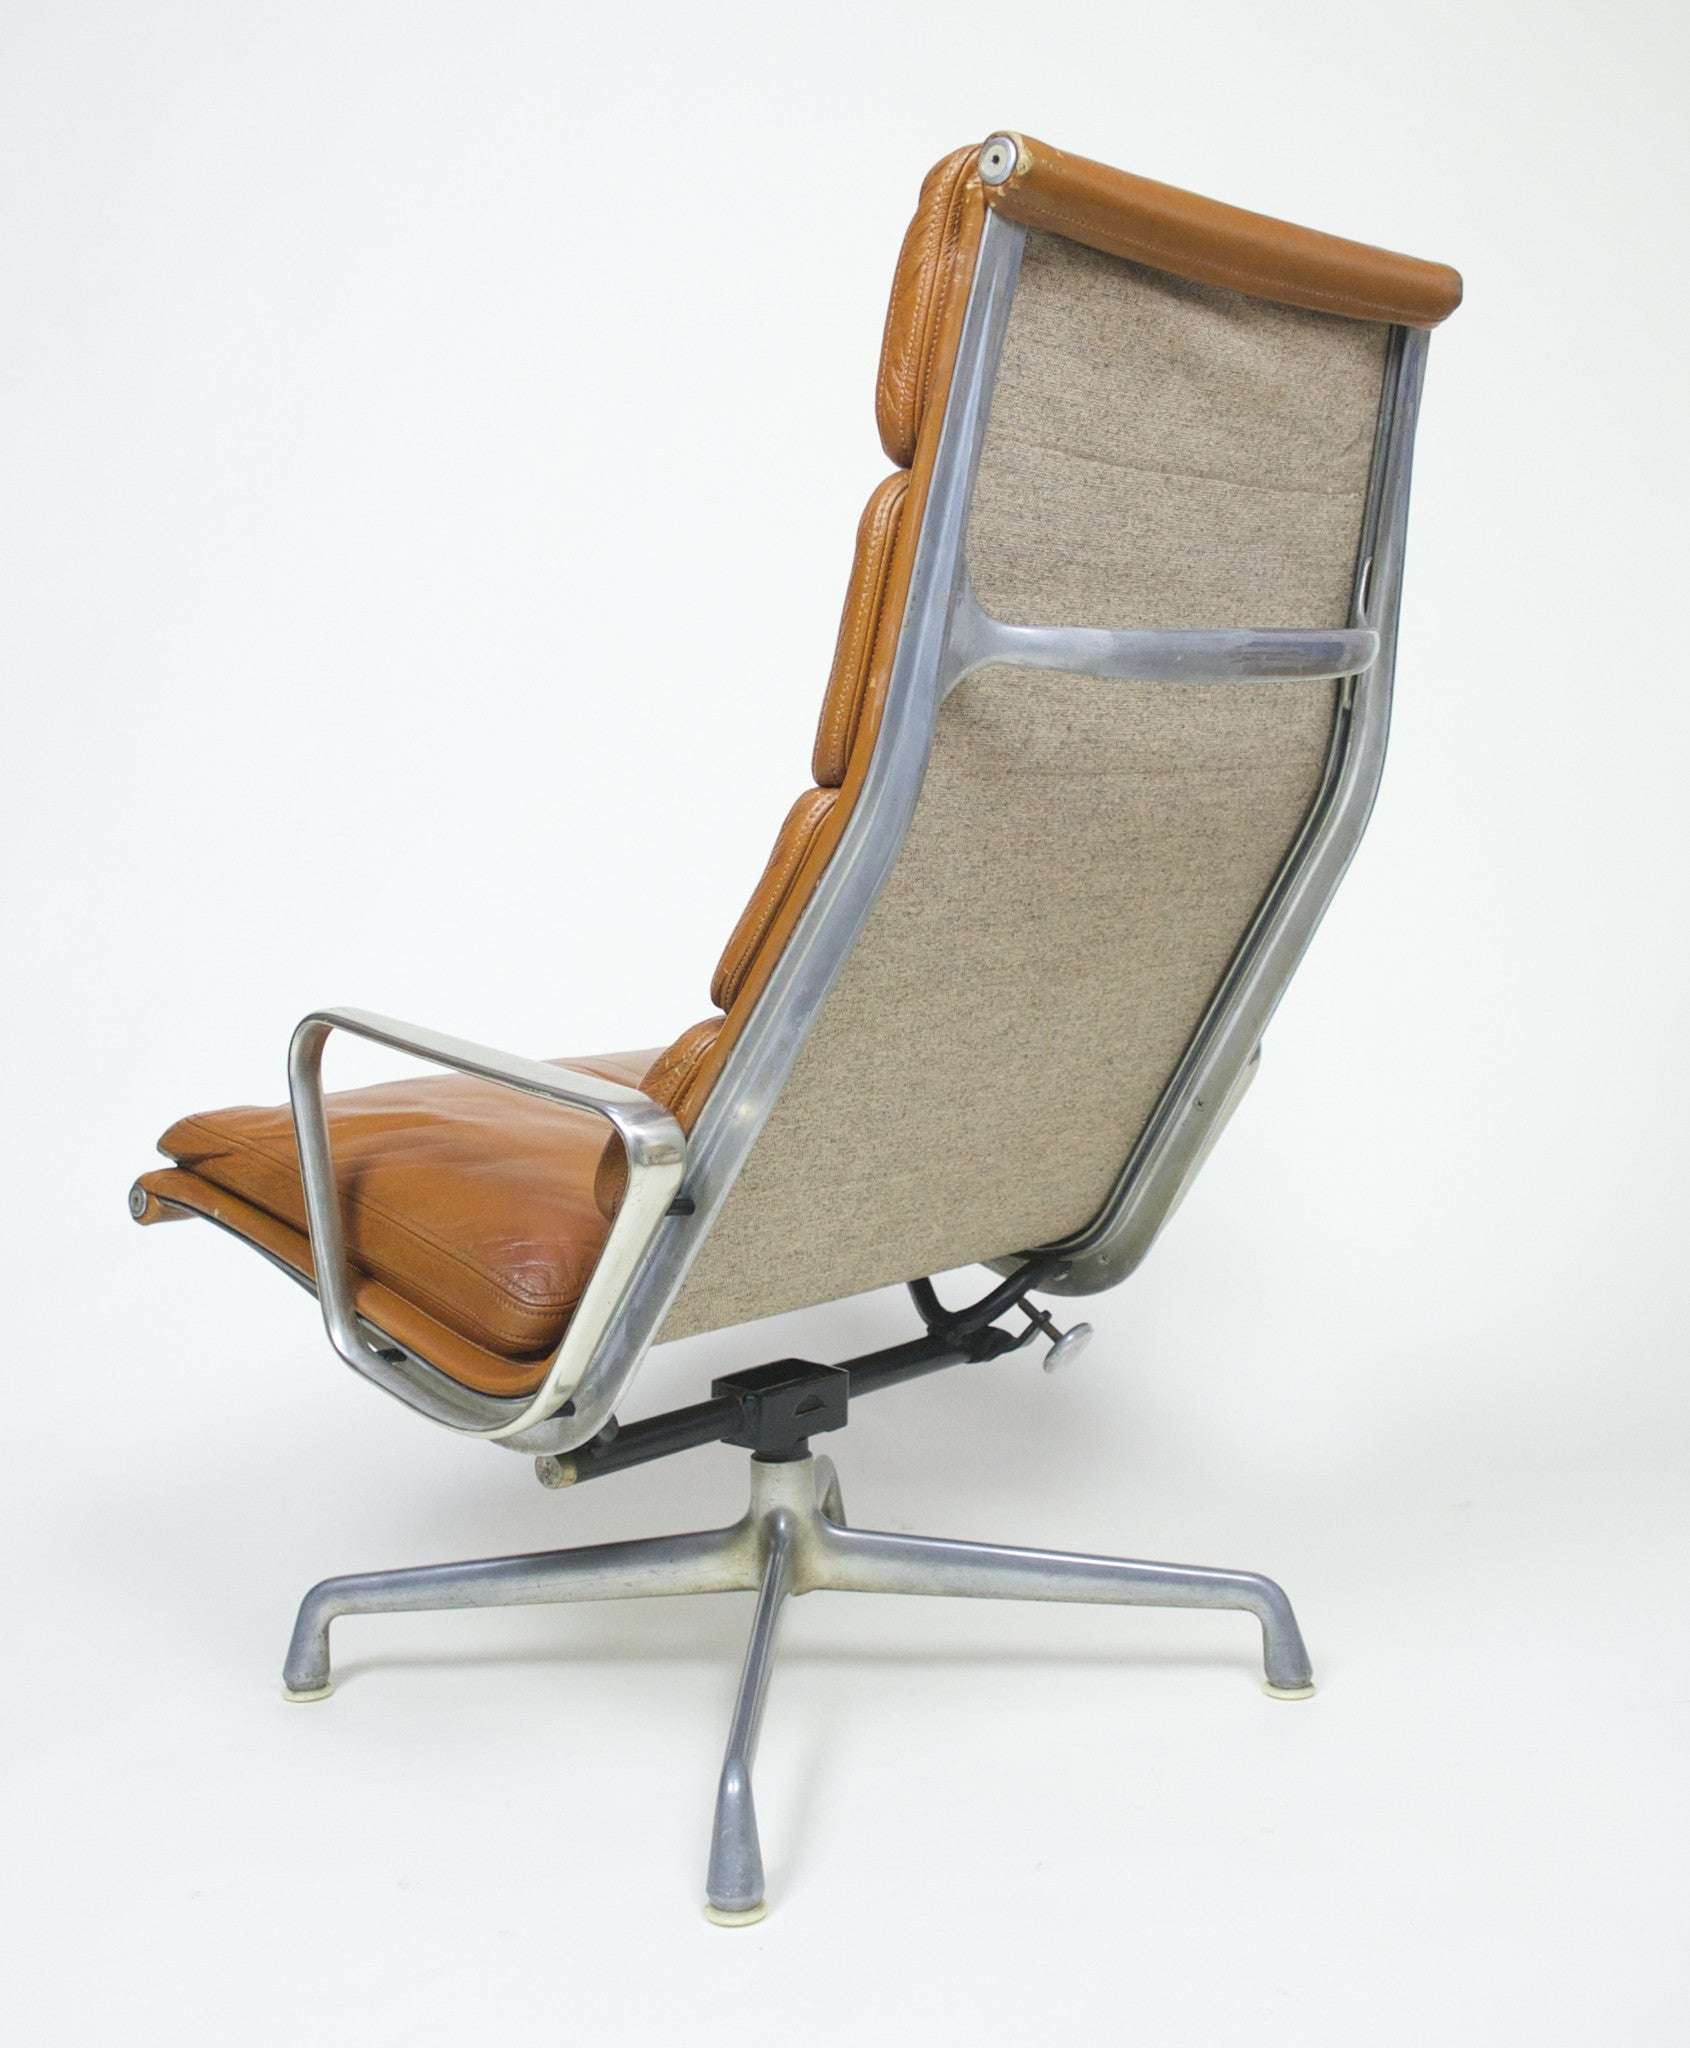 SOLD Eames 1970's Herman Miller Soft Pad Lounge Chair with Ottoman Cognac